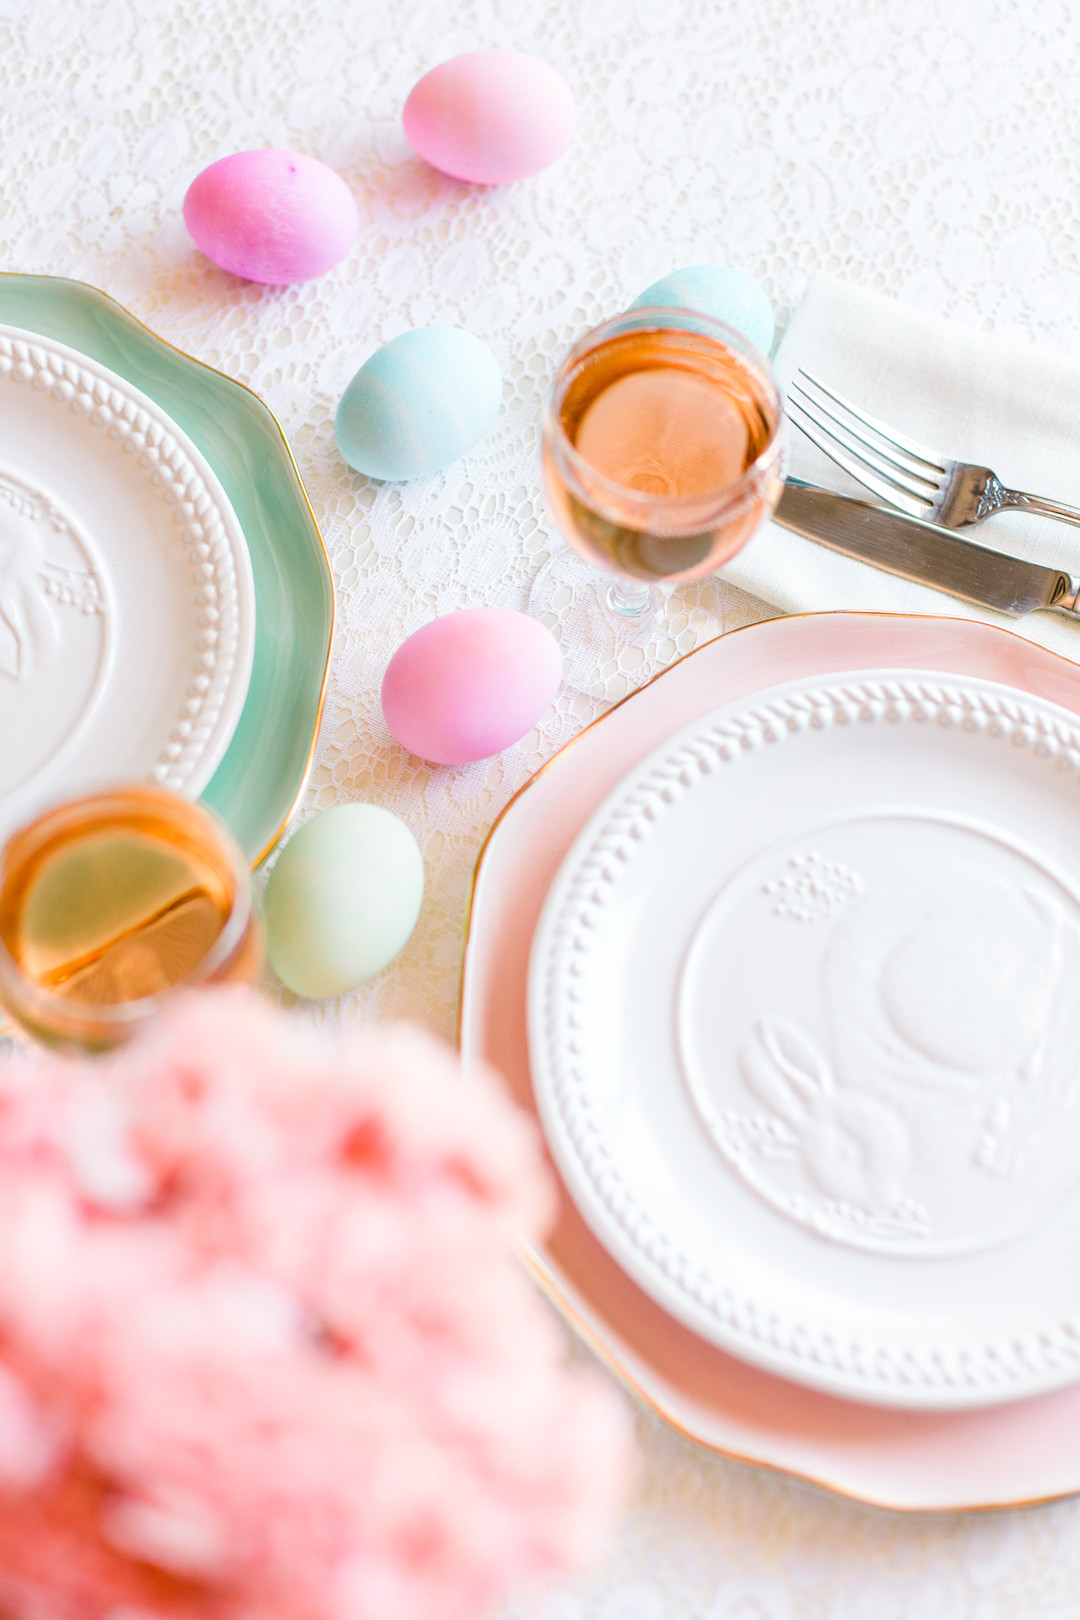 Staal_KristinaStaalPhotography_KristinaStaalPhotographyEasterTablescape201621_big Easy Entertaining: Easter Brunch Inspiration for Two